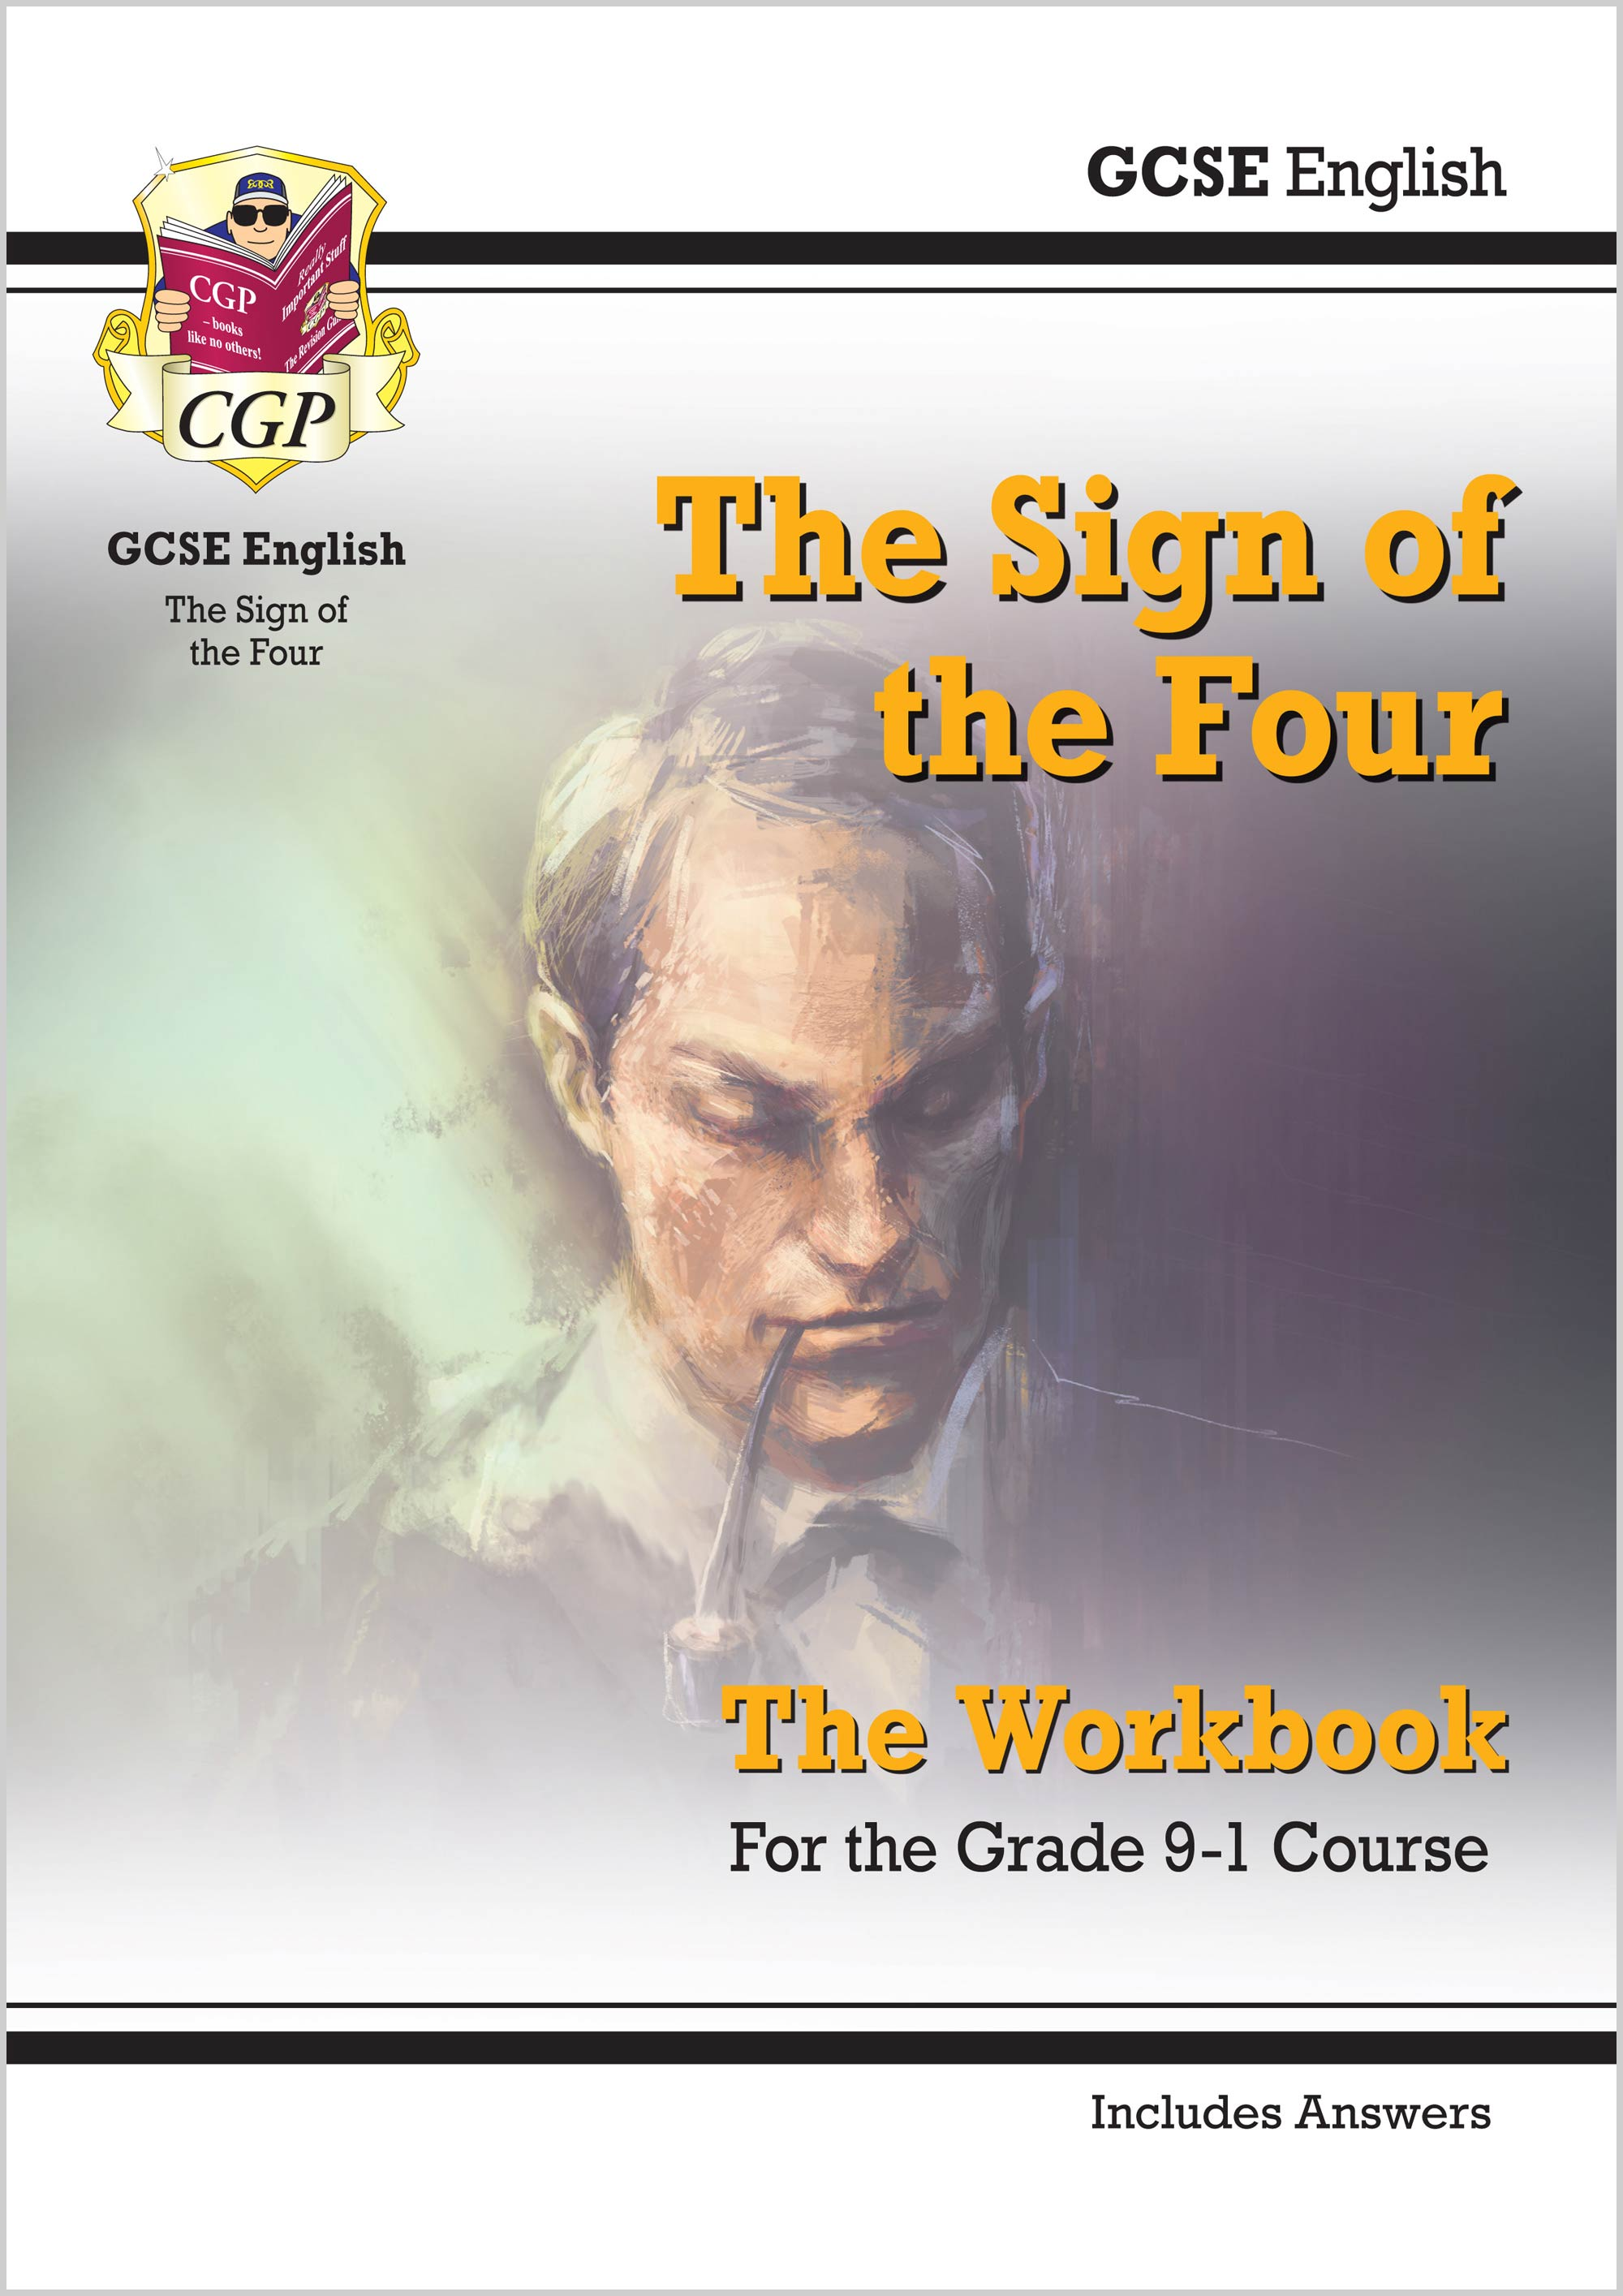 ETWSF41 - Grade 9-1 GCSE English - The Sign of the Four Workbook (includes Answers)